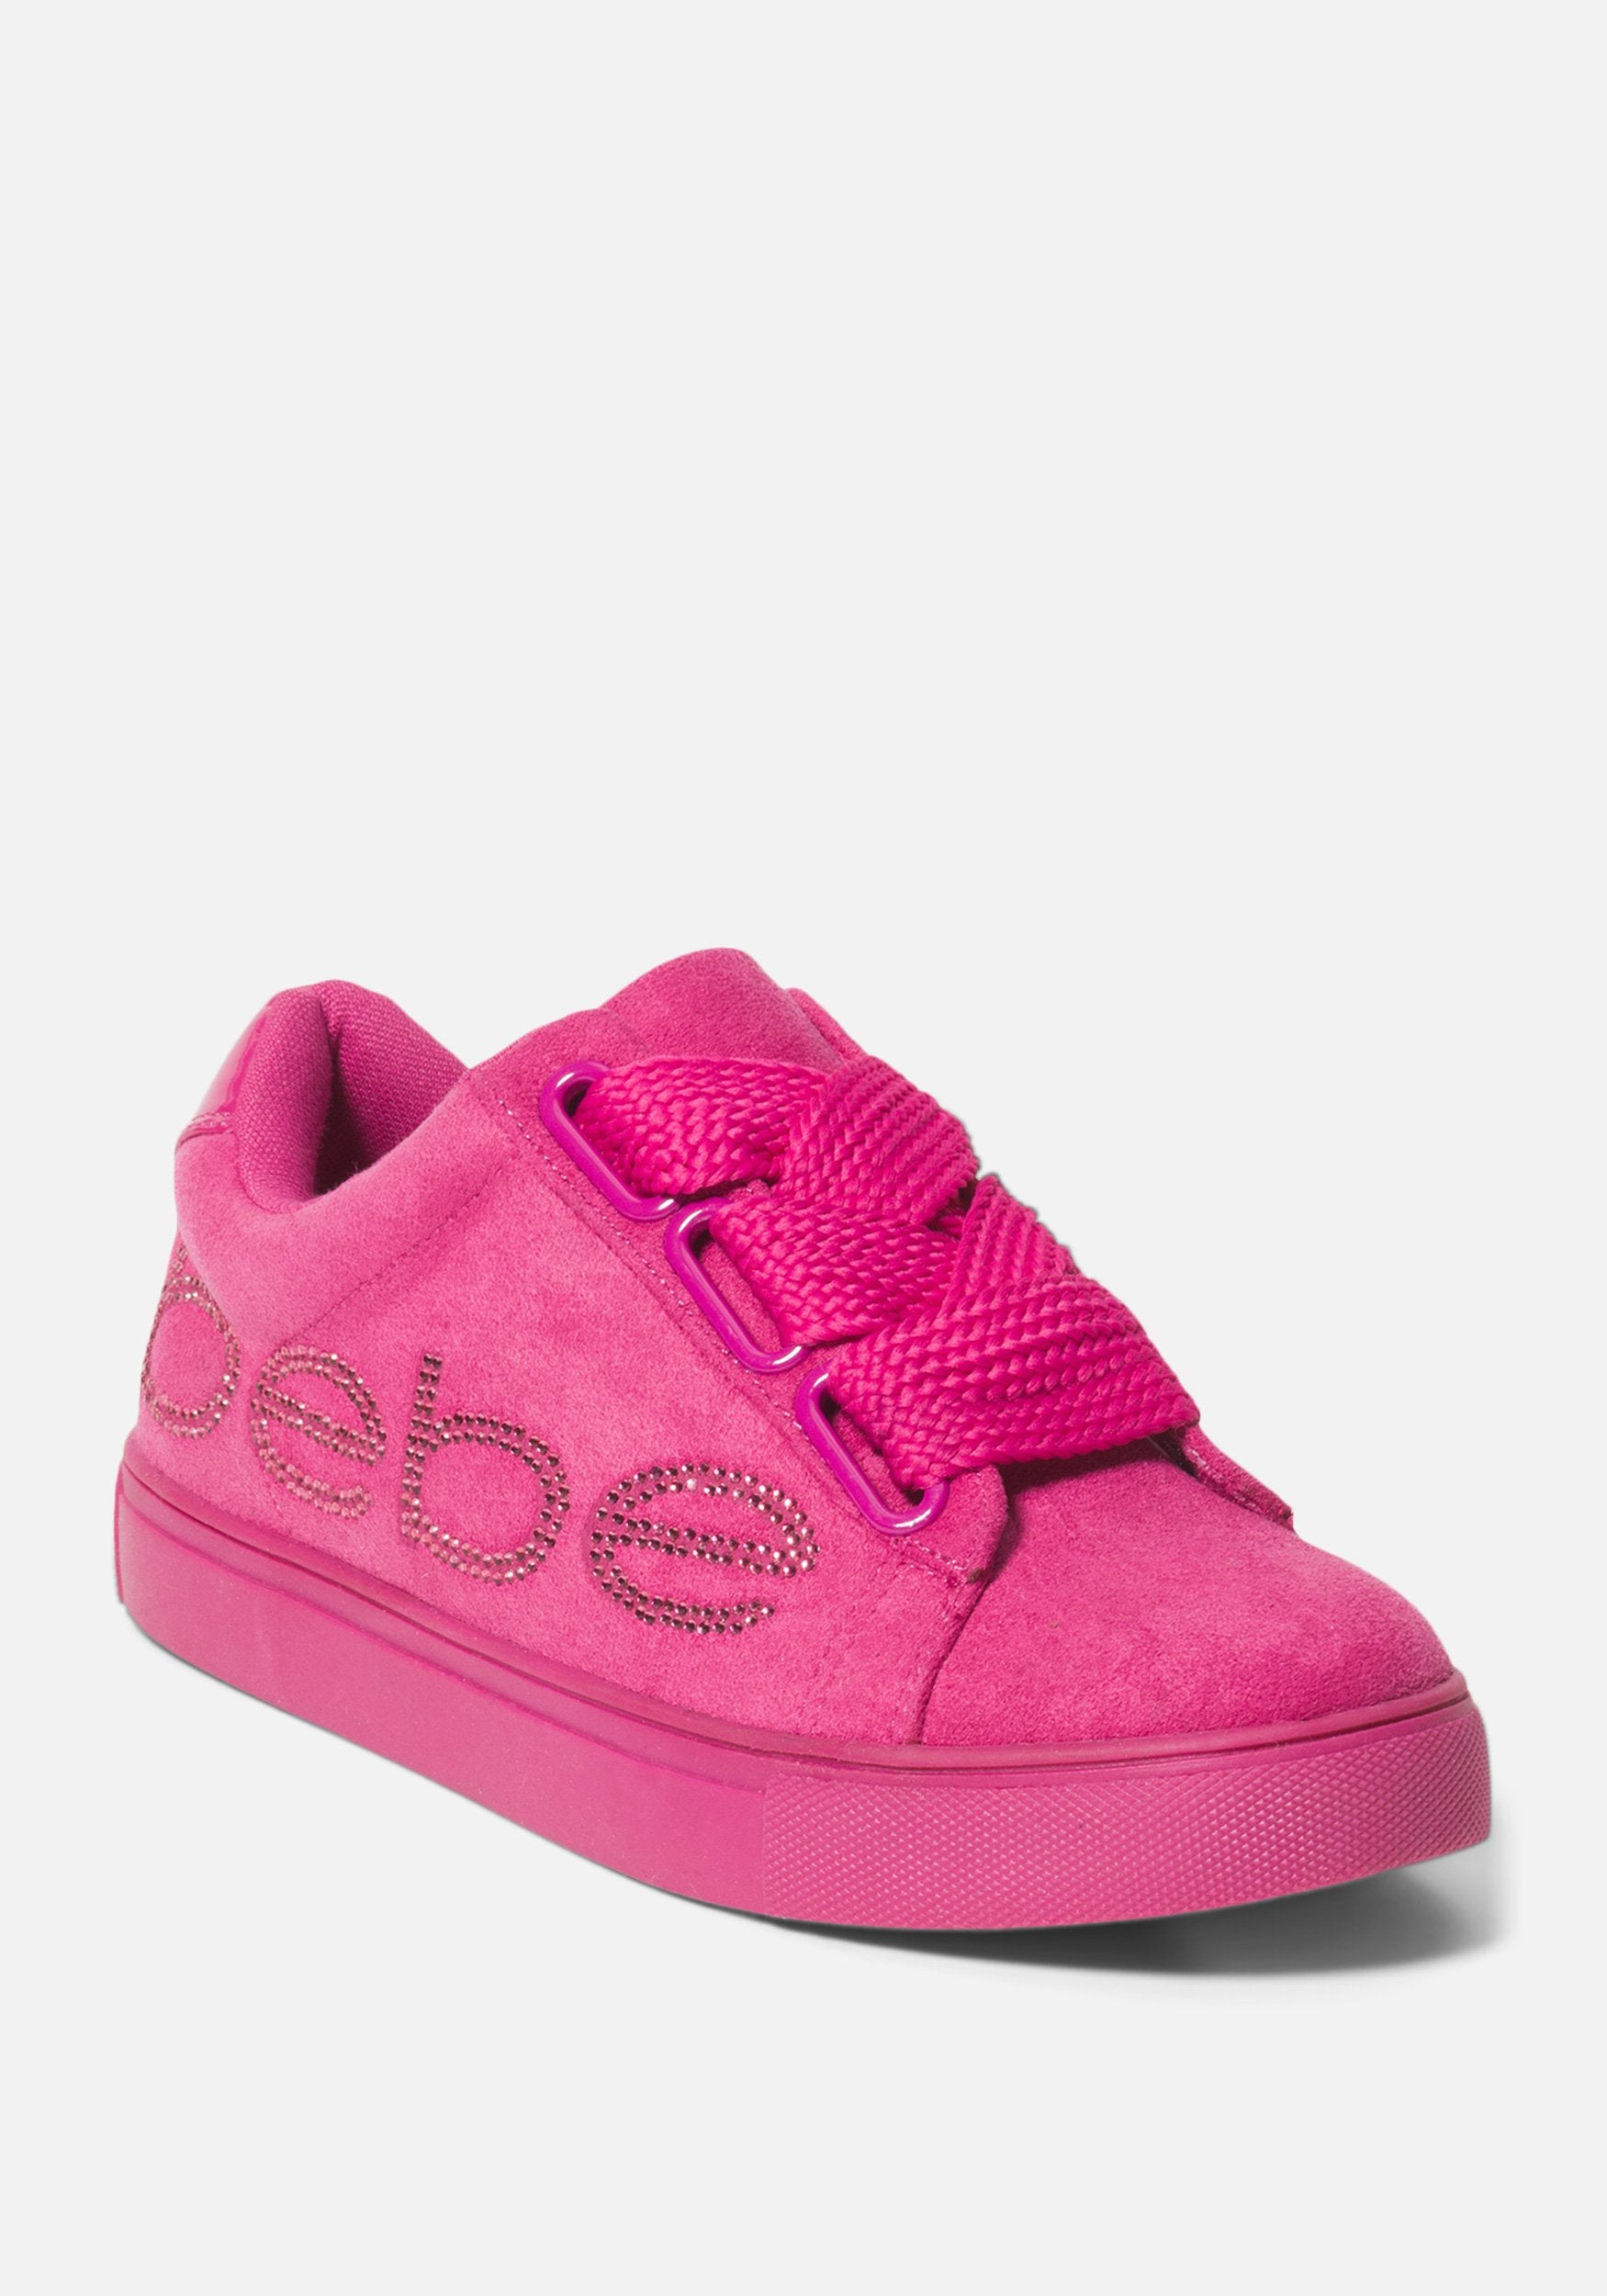 Women's Cabree Bebe Logo Sneakers, Size 6 in Hot Pink Synthetic